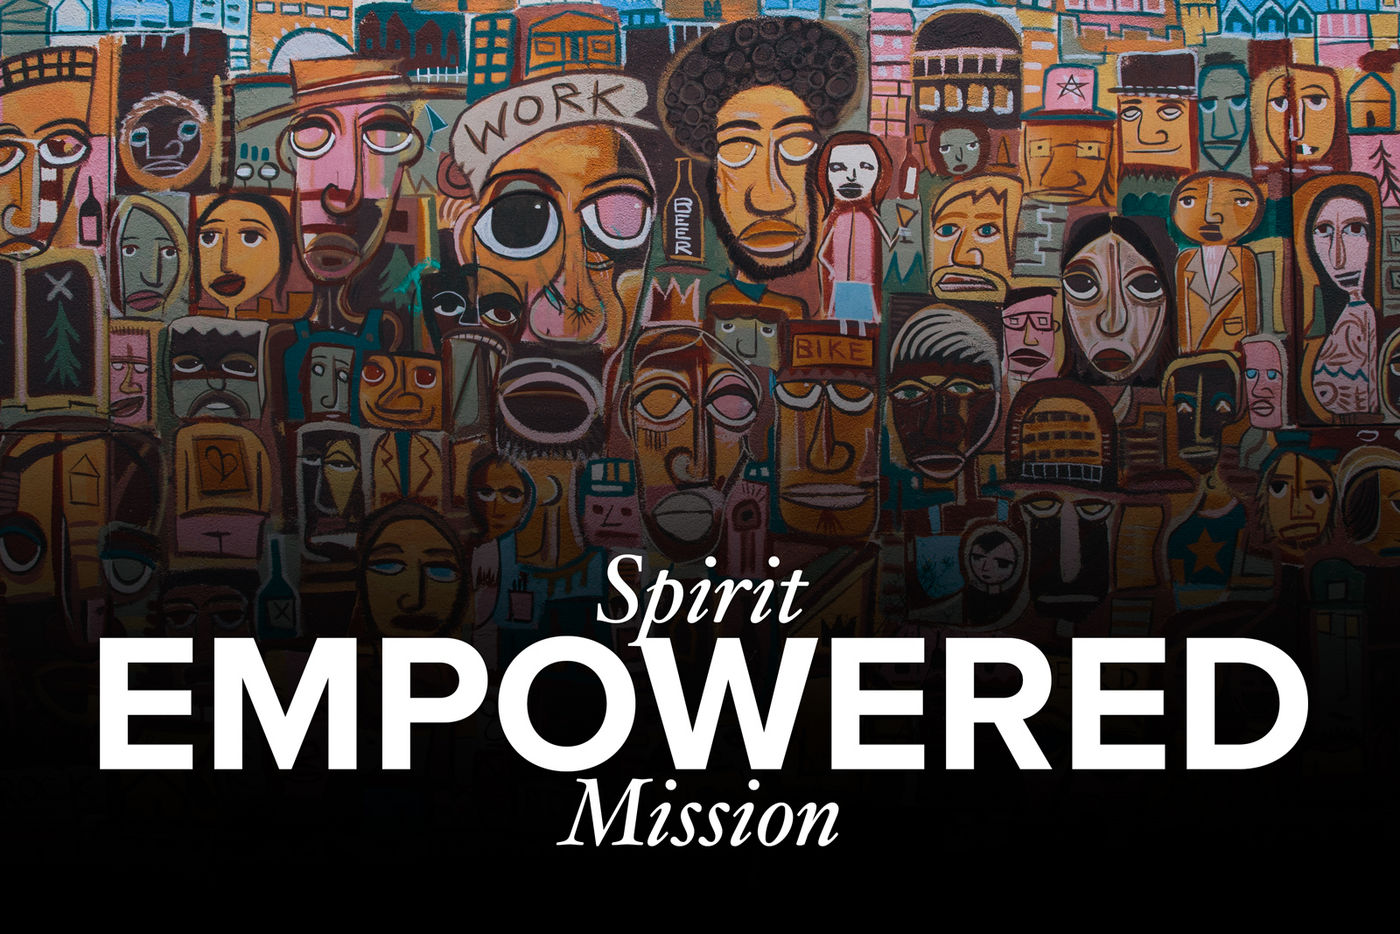 Spirit Empowered Mission